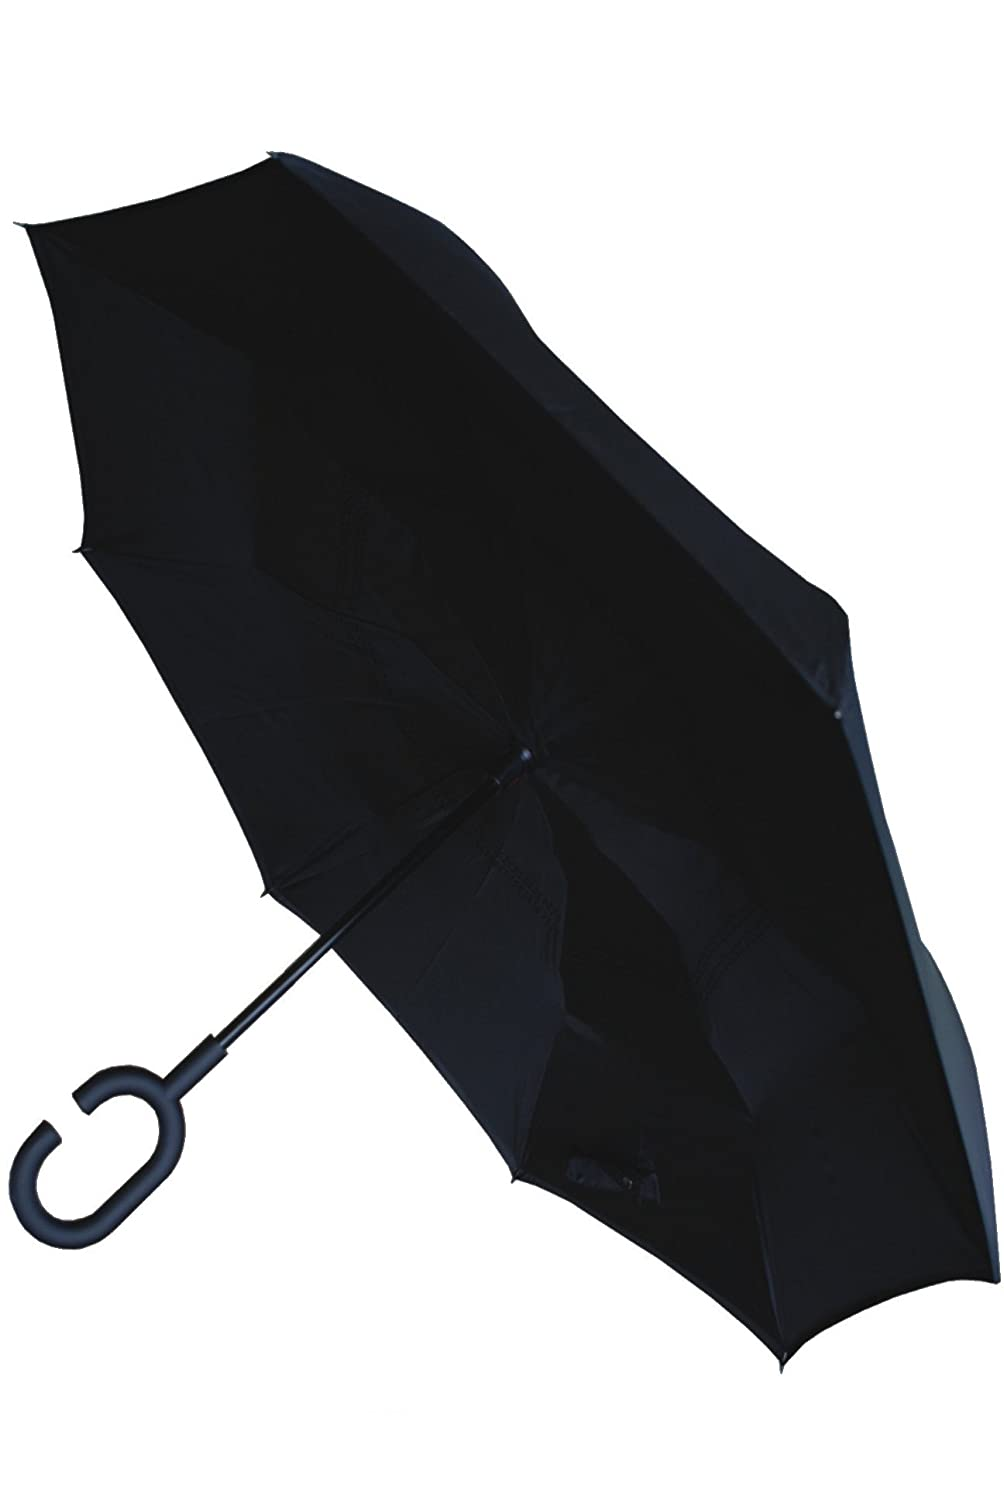 COLLAR AND CUFFS LONDON - Inside Out Windproof Extra Strong StormProtector StayDry Umbrella - Highly Engineered - Clever Reverse Design - Rain Stays Inside When Closed - C Handle – Black CCLSTORMPUMB10234